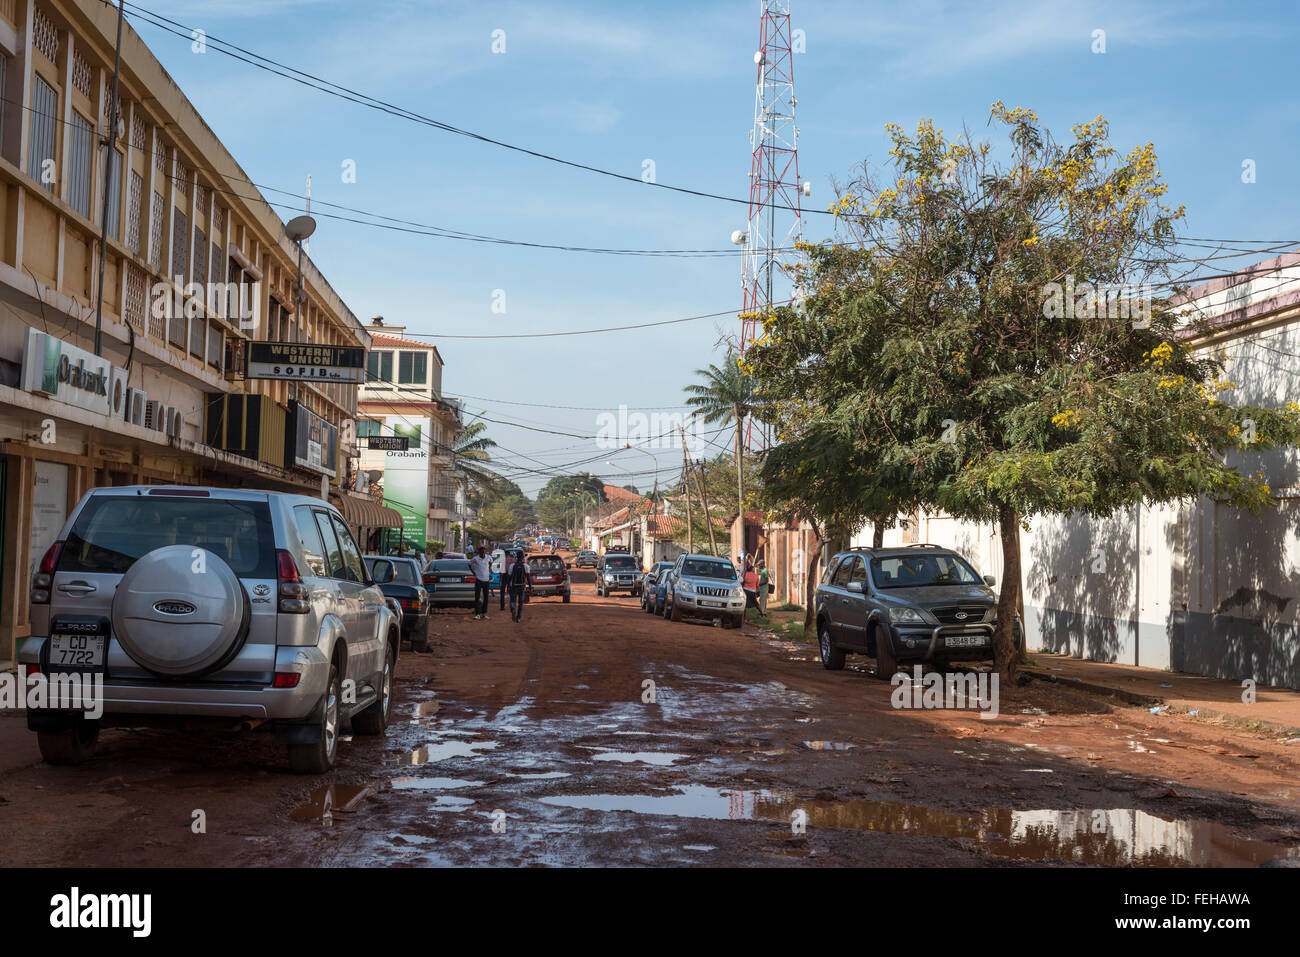 An unpaved road in the Guinea Bissau capital city of Bissau - Stock Image